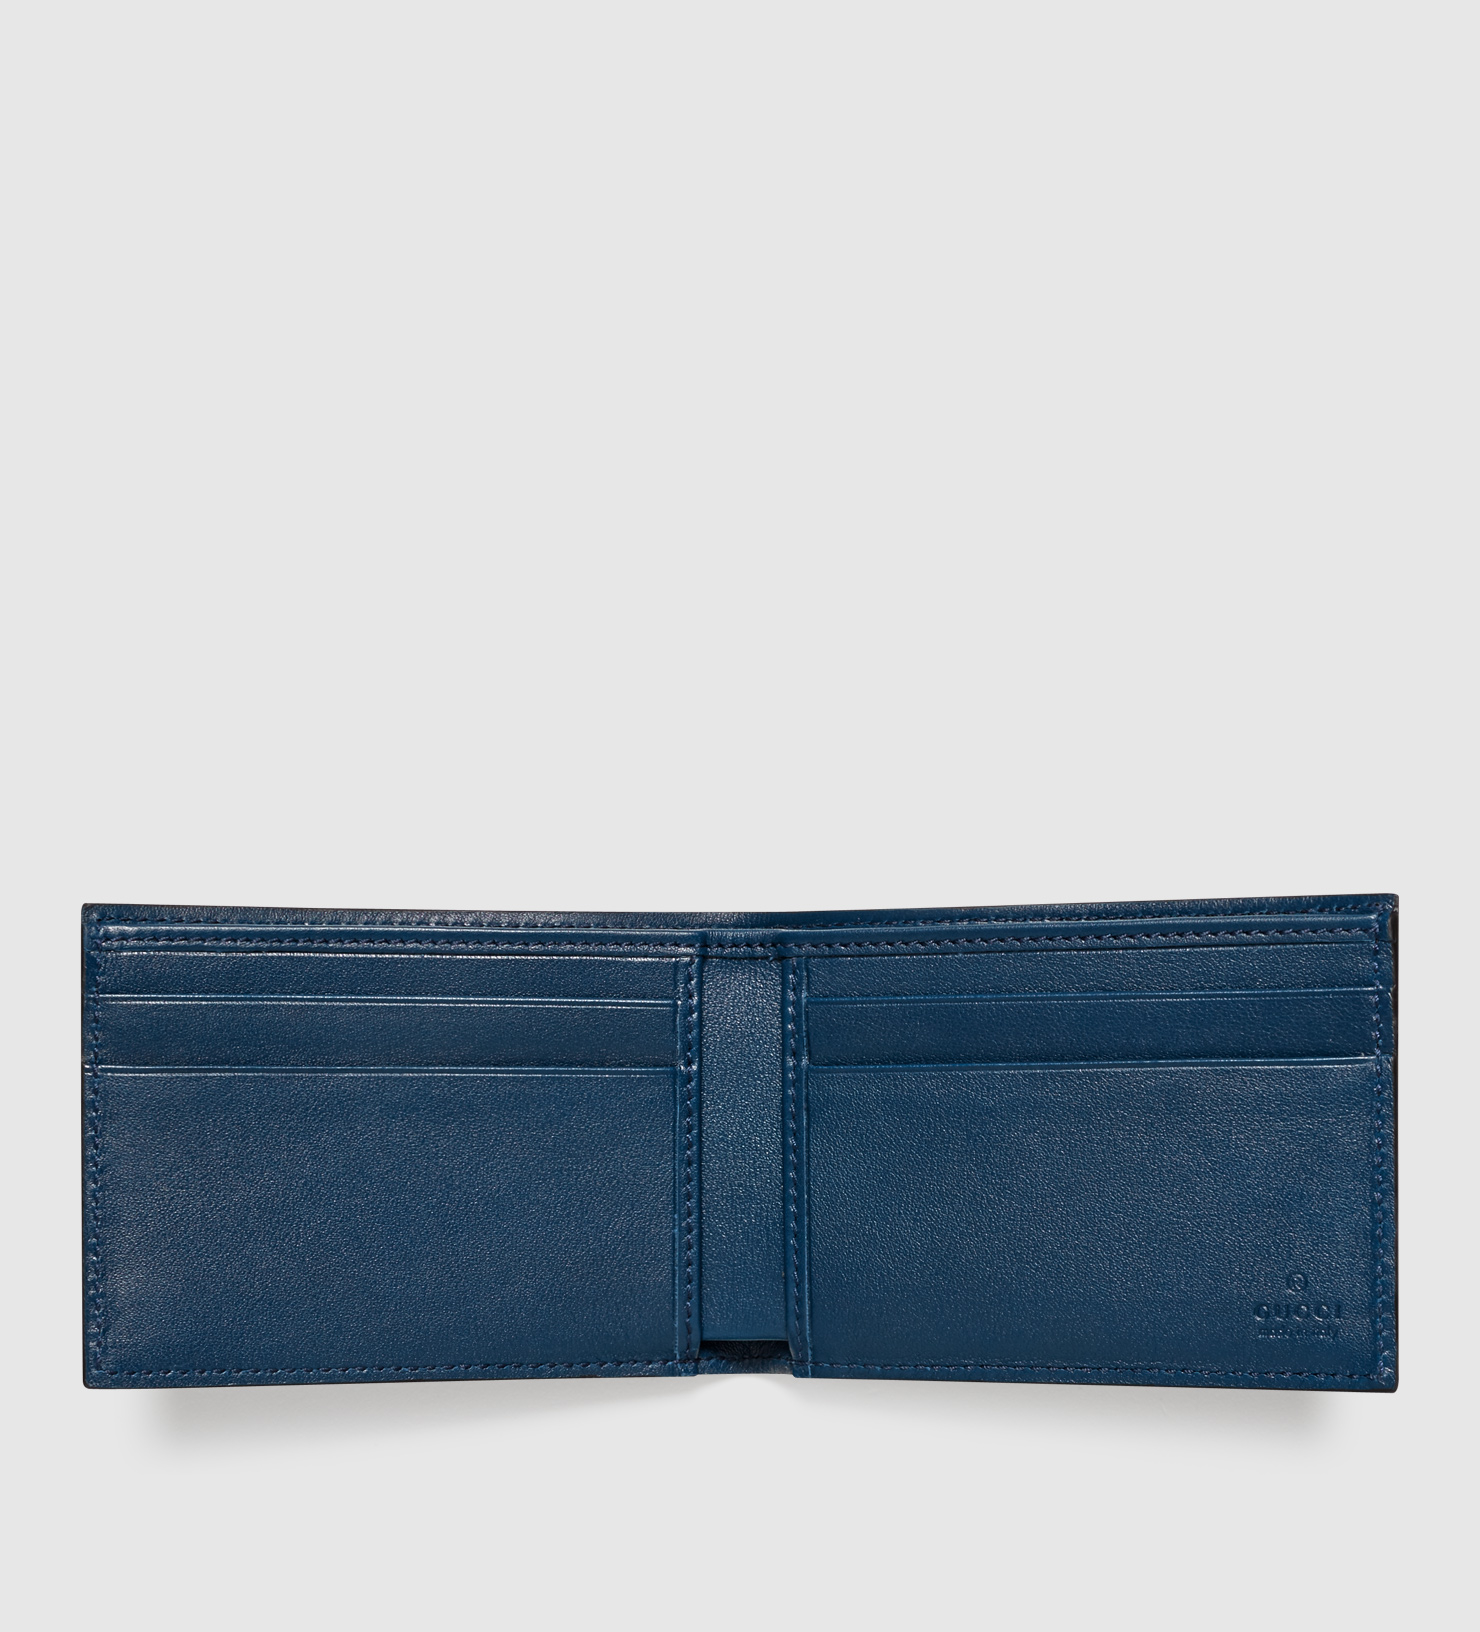 2e46ee06ee81 Gucci Patent Microssima Leather Bi-fold Wallet in Blue for Men - Lyst